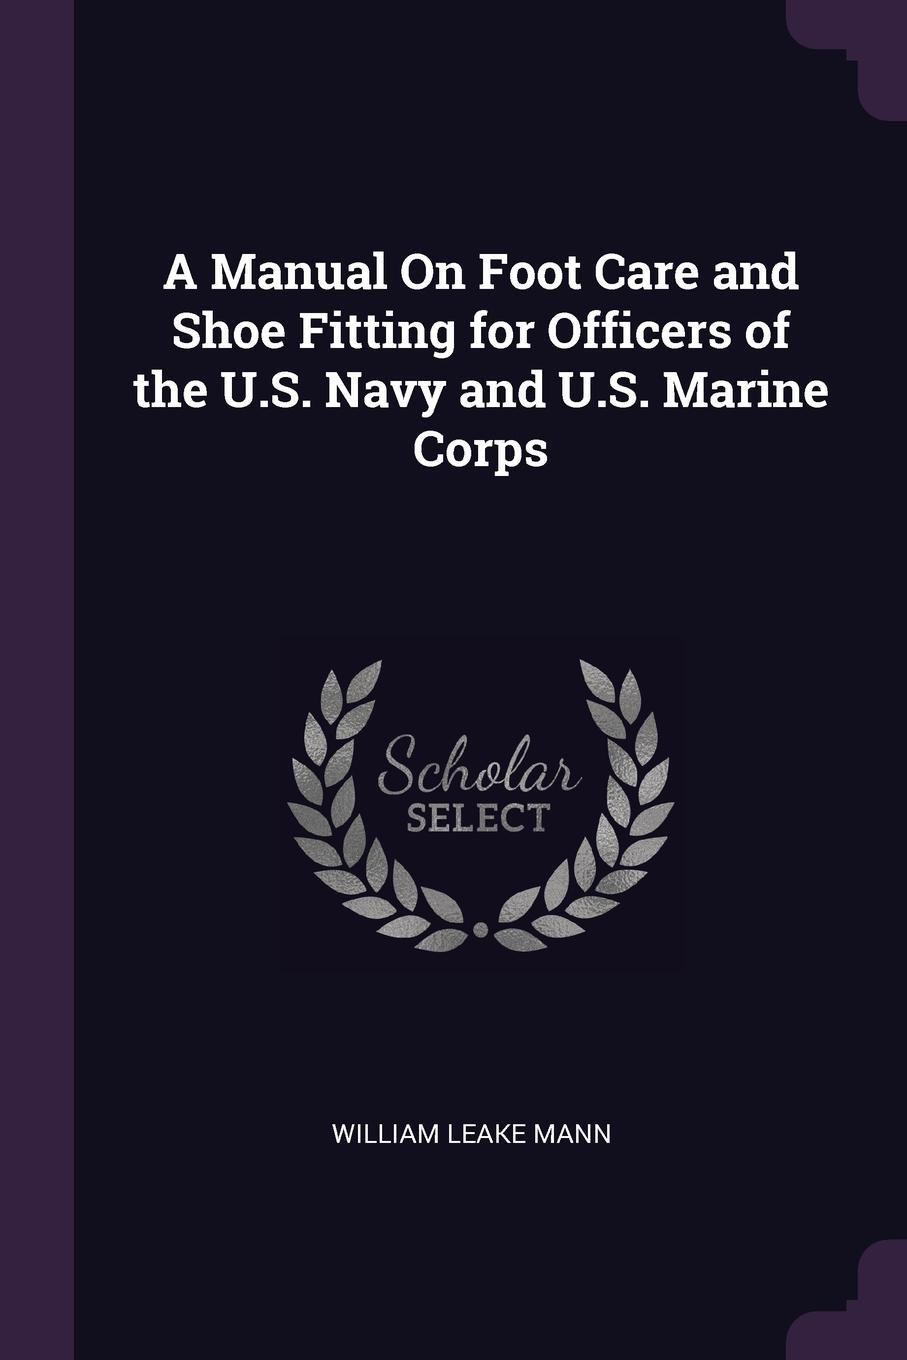 William Leake Mann. A Manual On Foot Care and Shoe Fitting for Officers of the U.S. Navy and U.S. Marine Corps